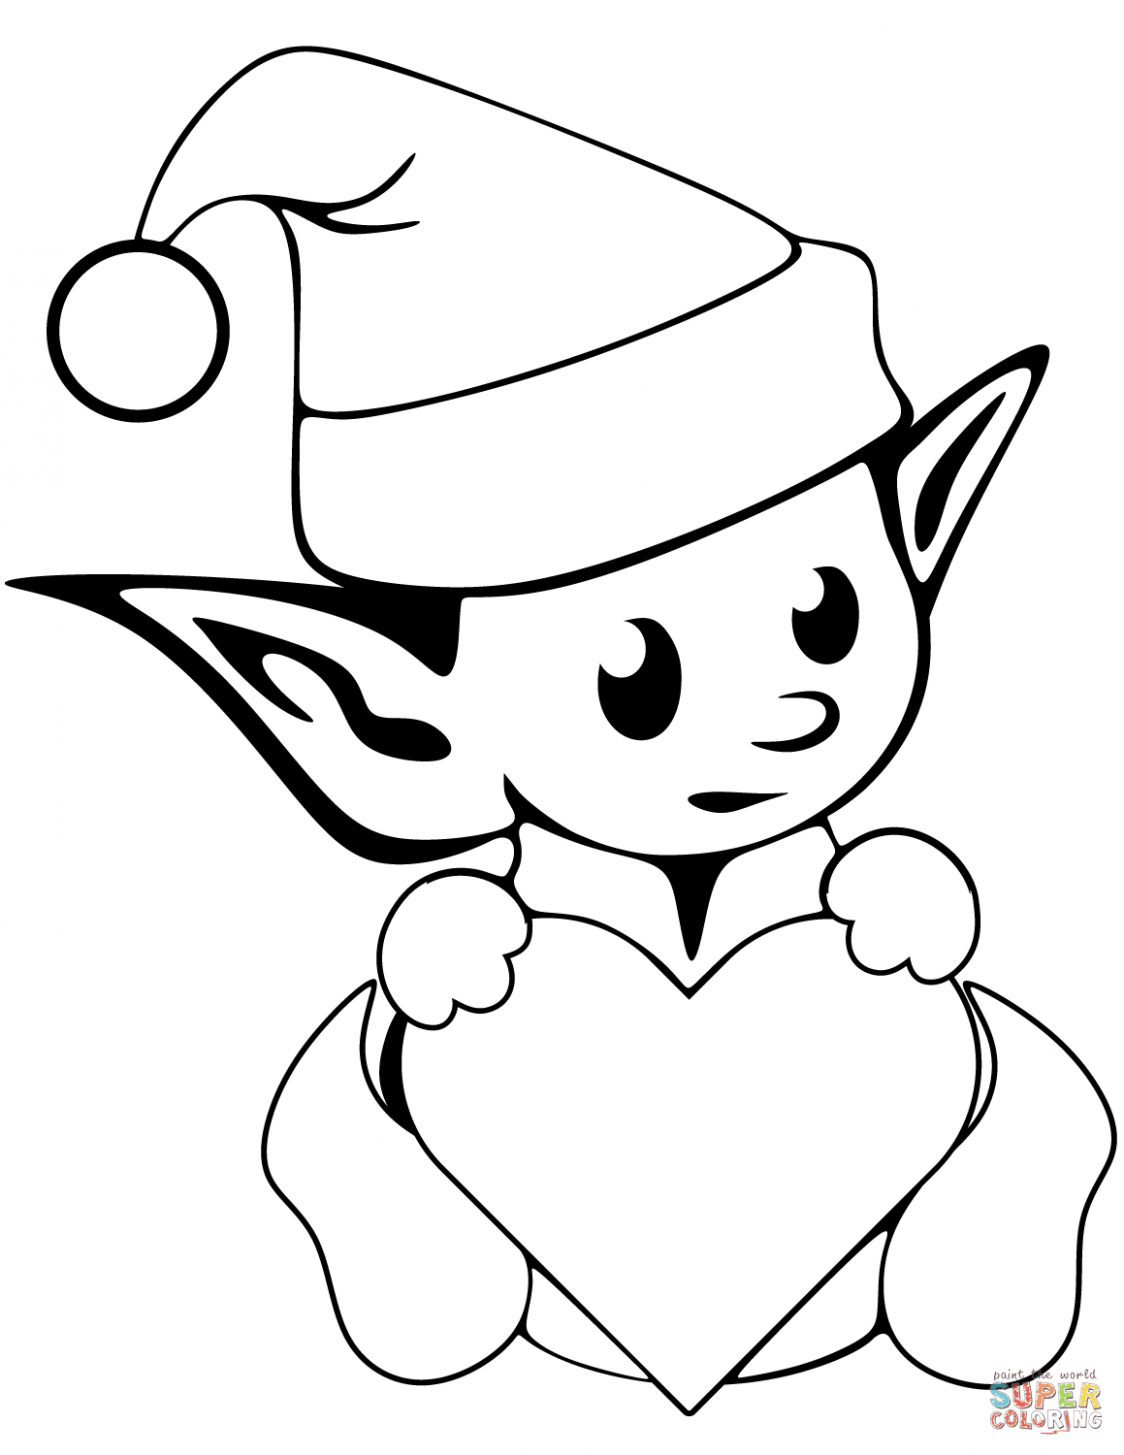 Coloring Ideas : Cute Christmas Elf Coloring Page Elves Pages Free ...